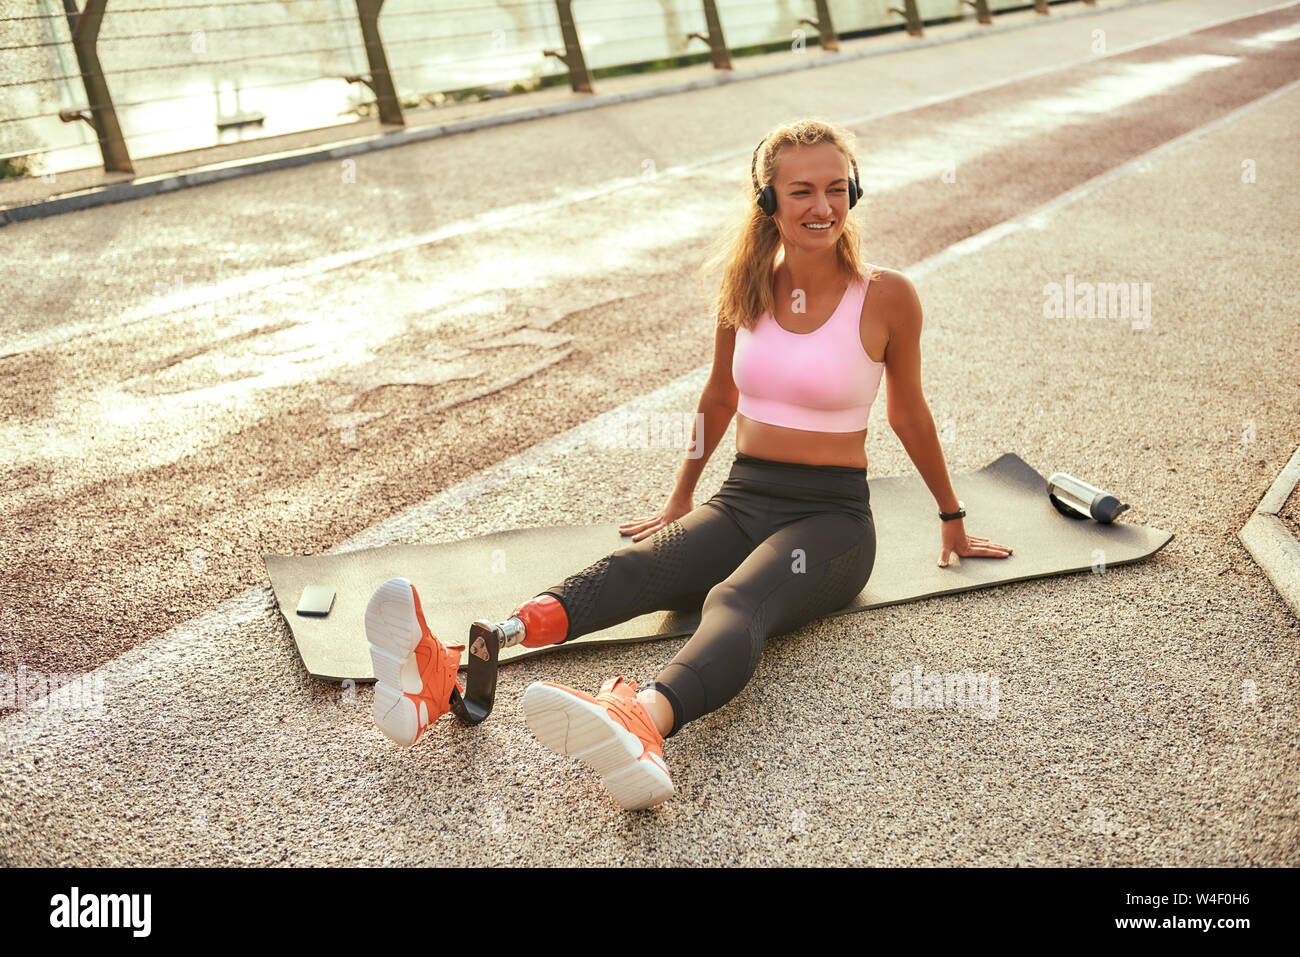 Woman Headphones Running In Stadium Stock Photos & Woman